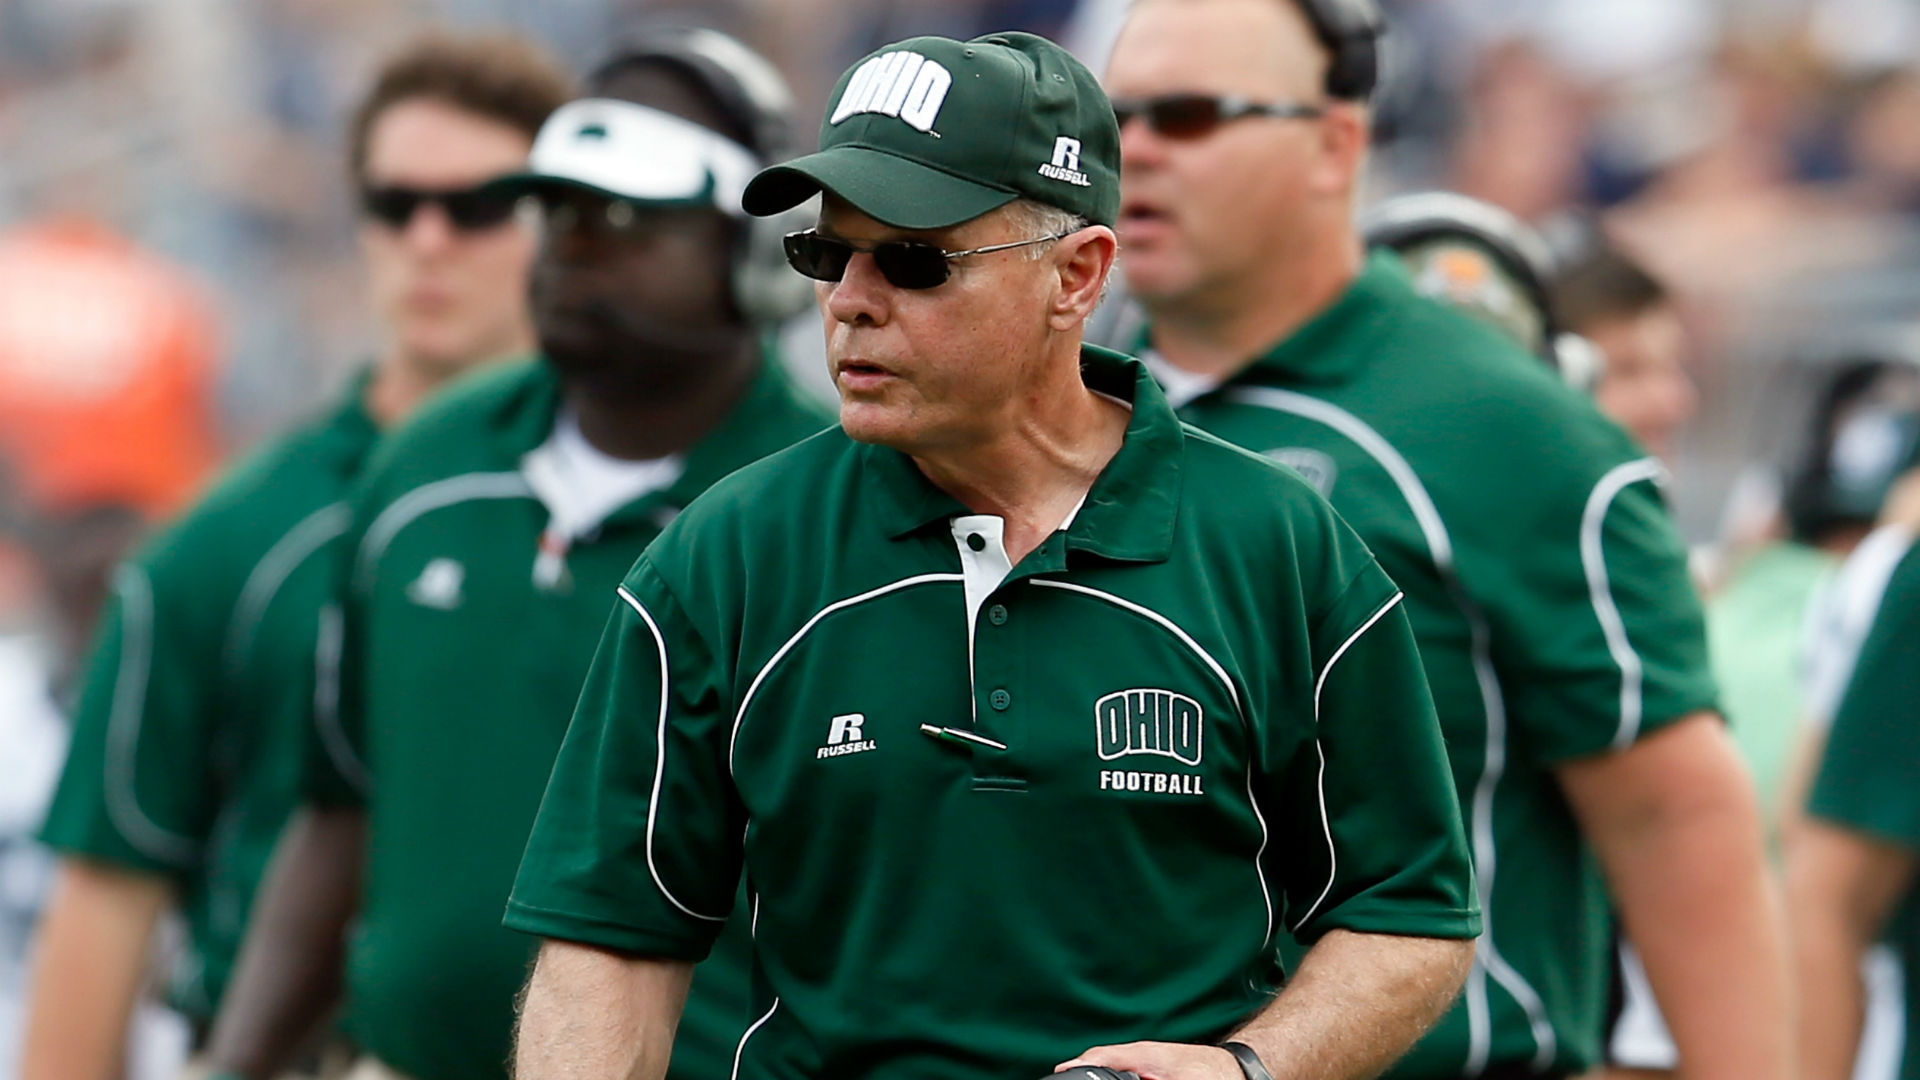 Ohio vs. Miami (OH) betting preview and pick - Bobcats take aim at .500 and bowl eligibility